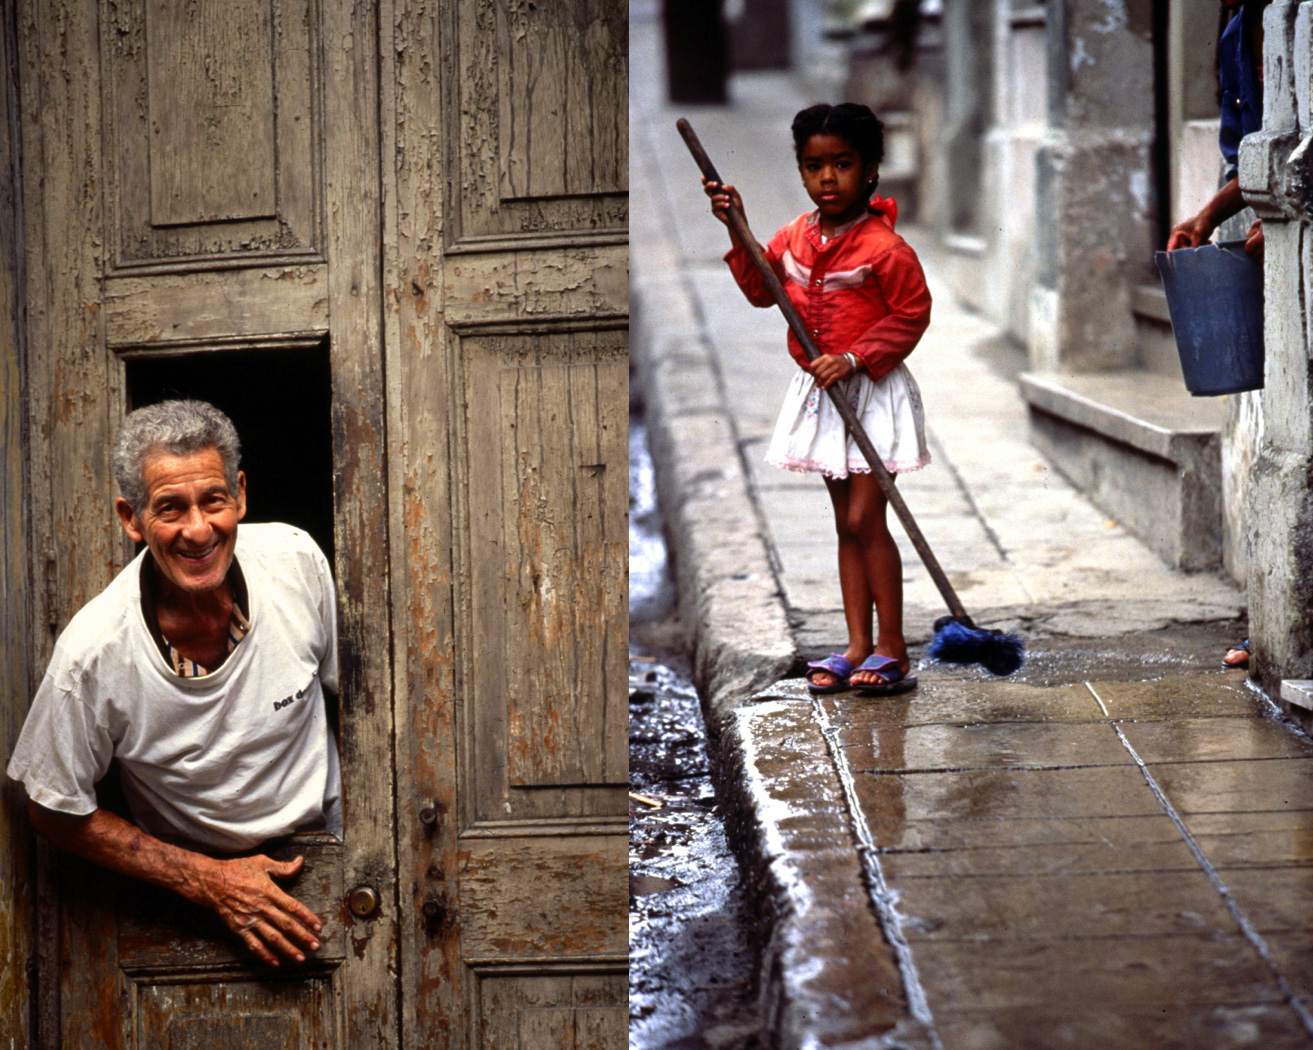 Local faces on Havana streets/Steve Mason Photography